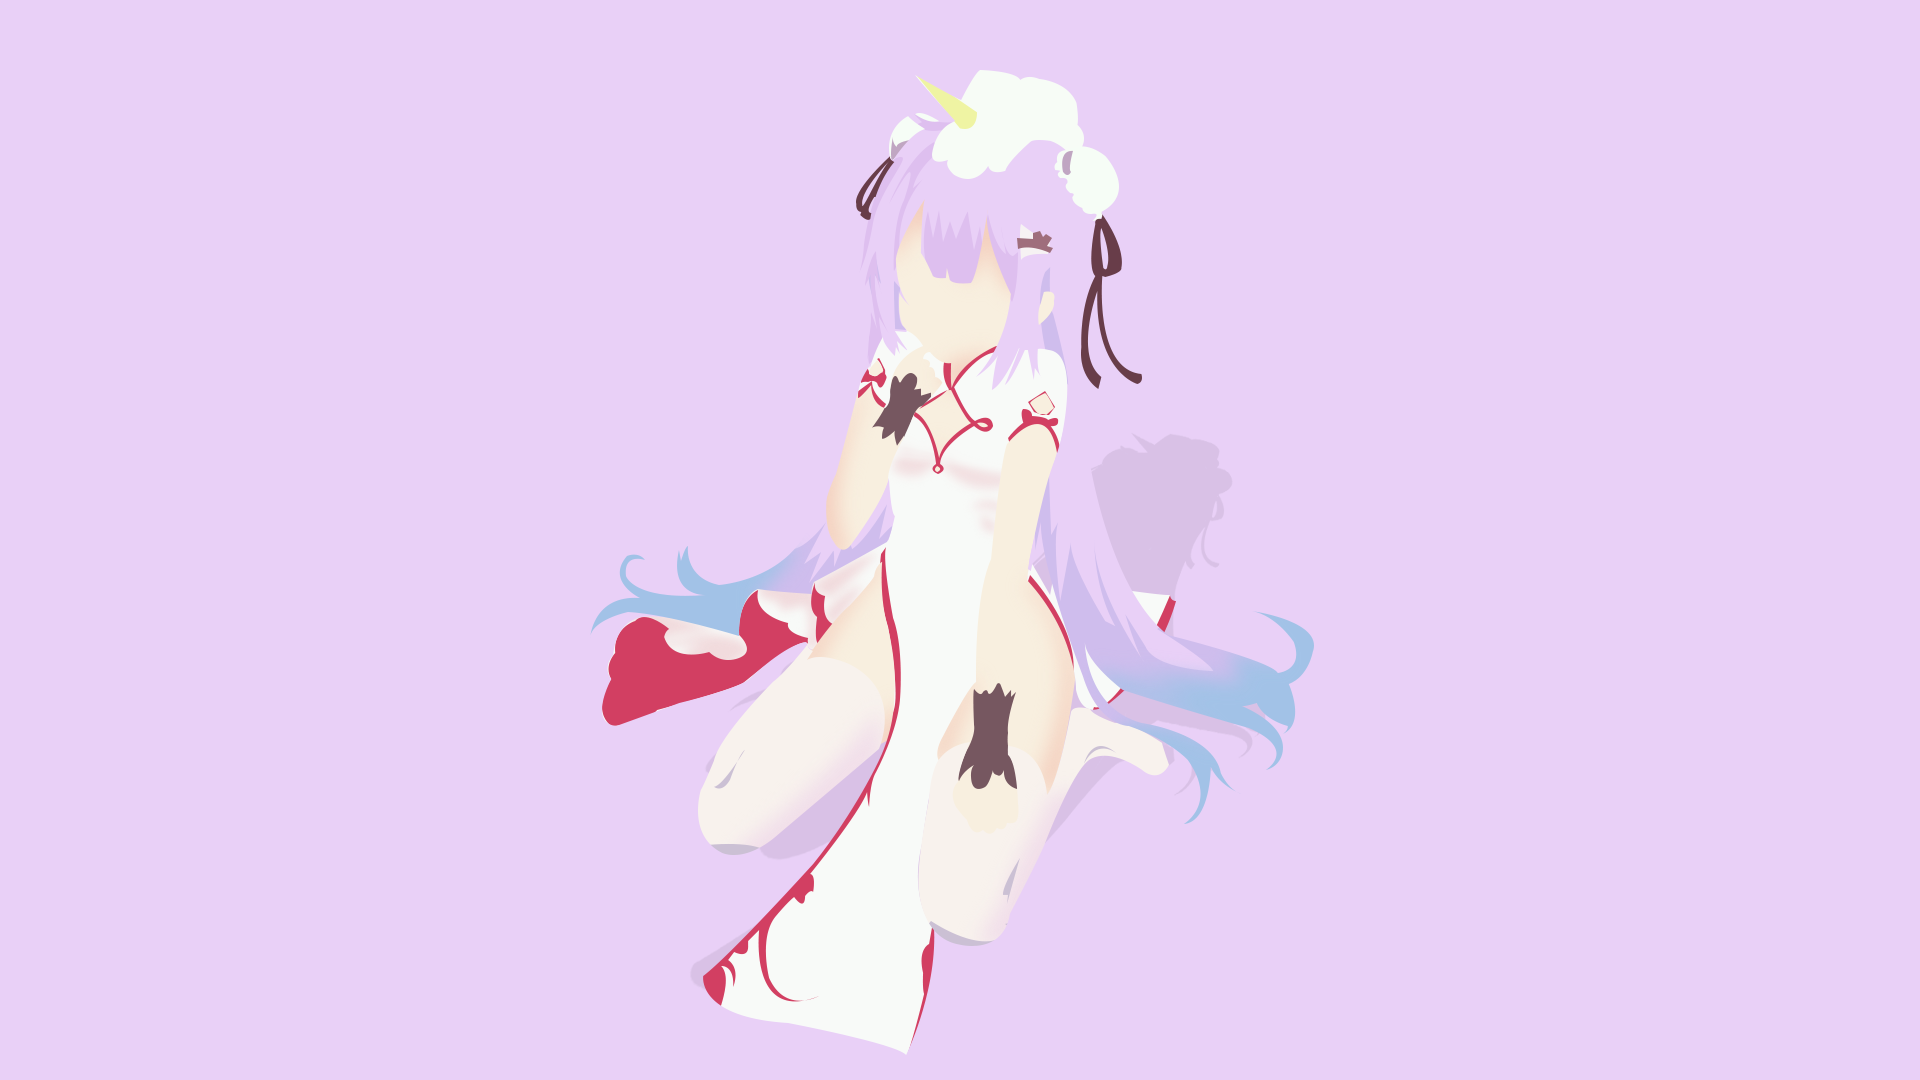 Anime 1920x1080 unicorn anime anime girls purple hair minimalism vector